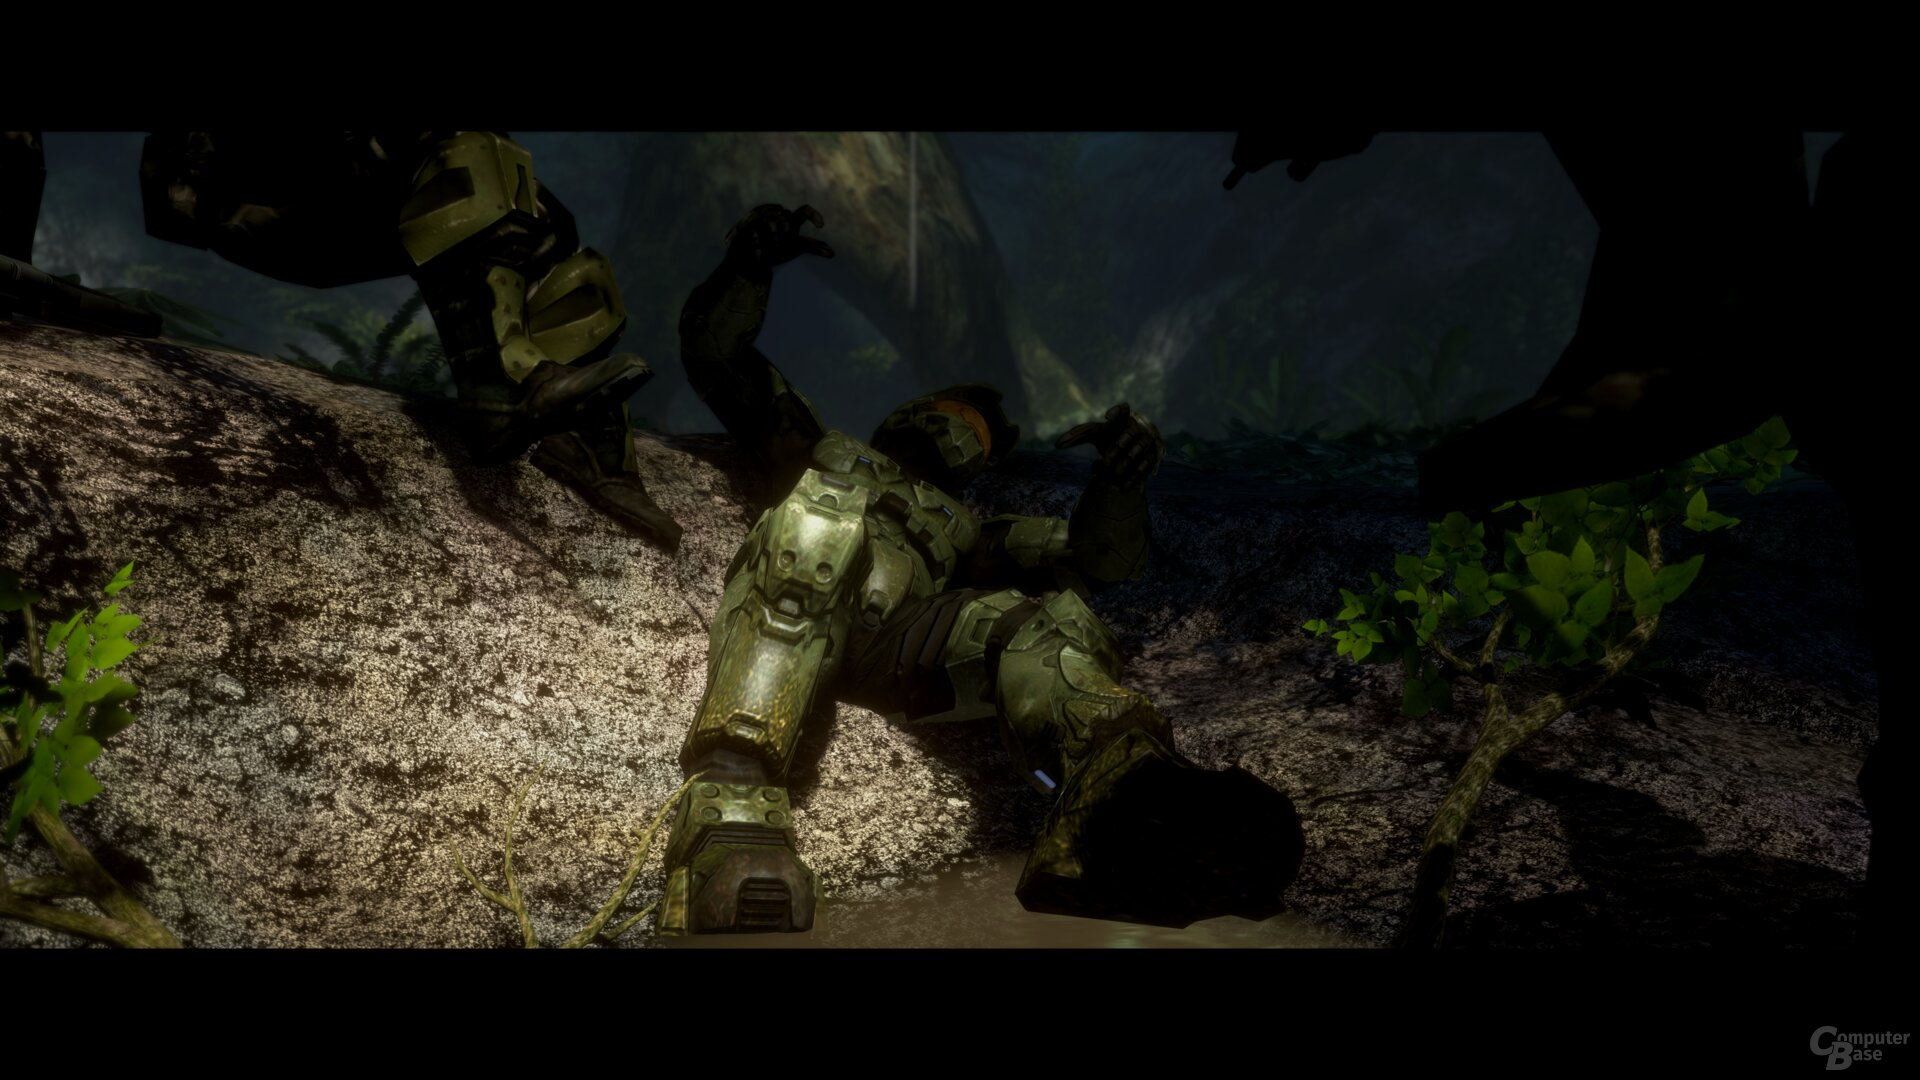 Halo 3: The Master Chief Collection